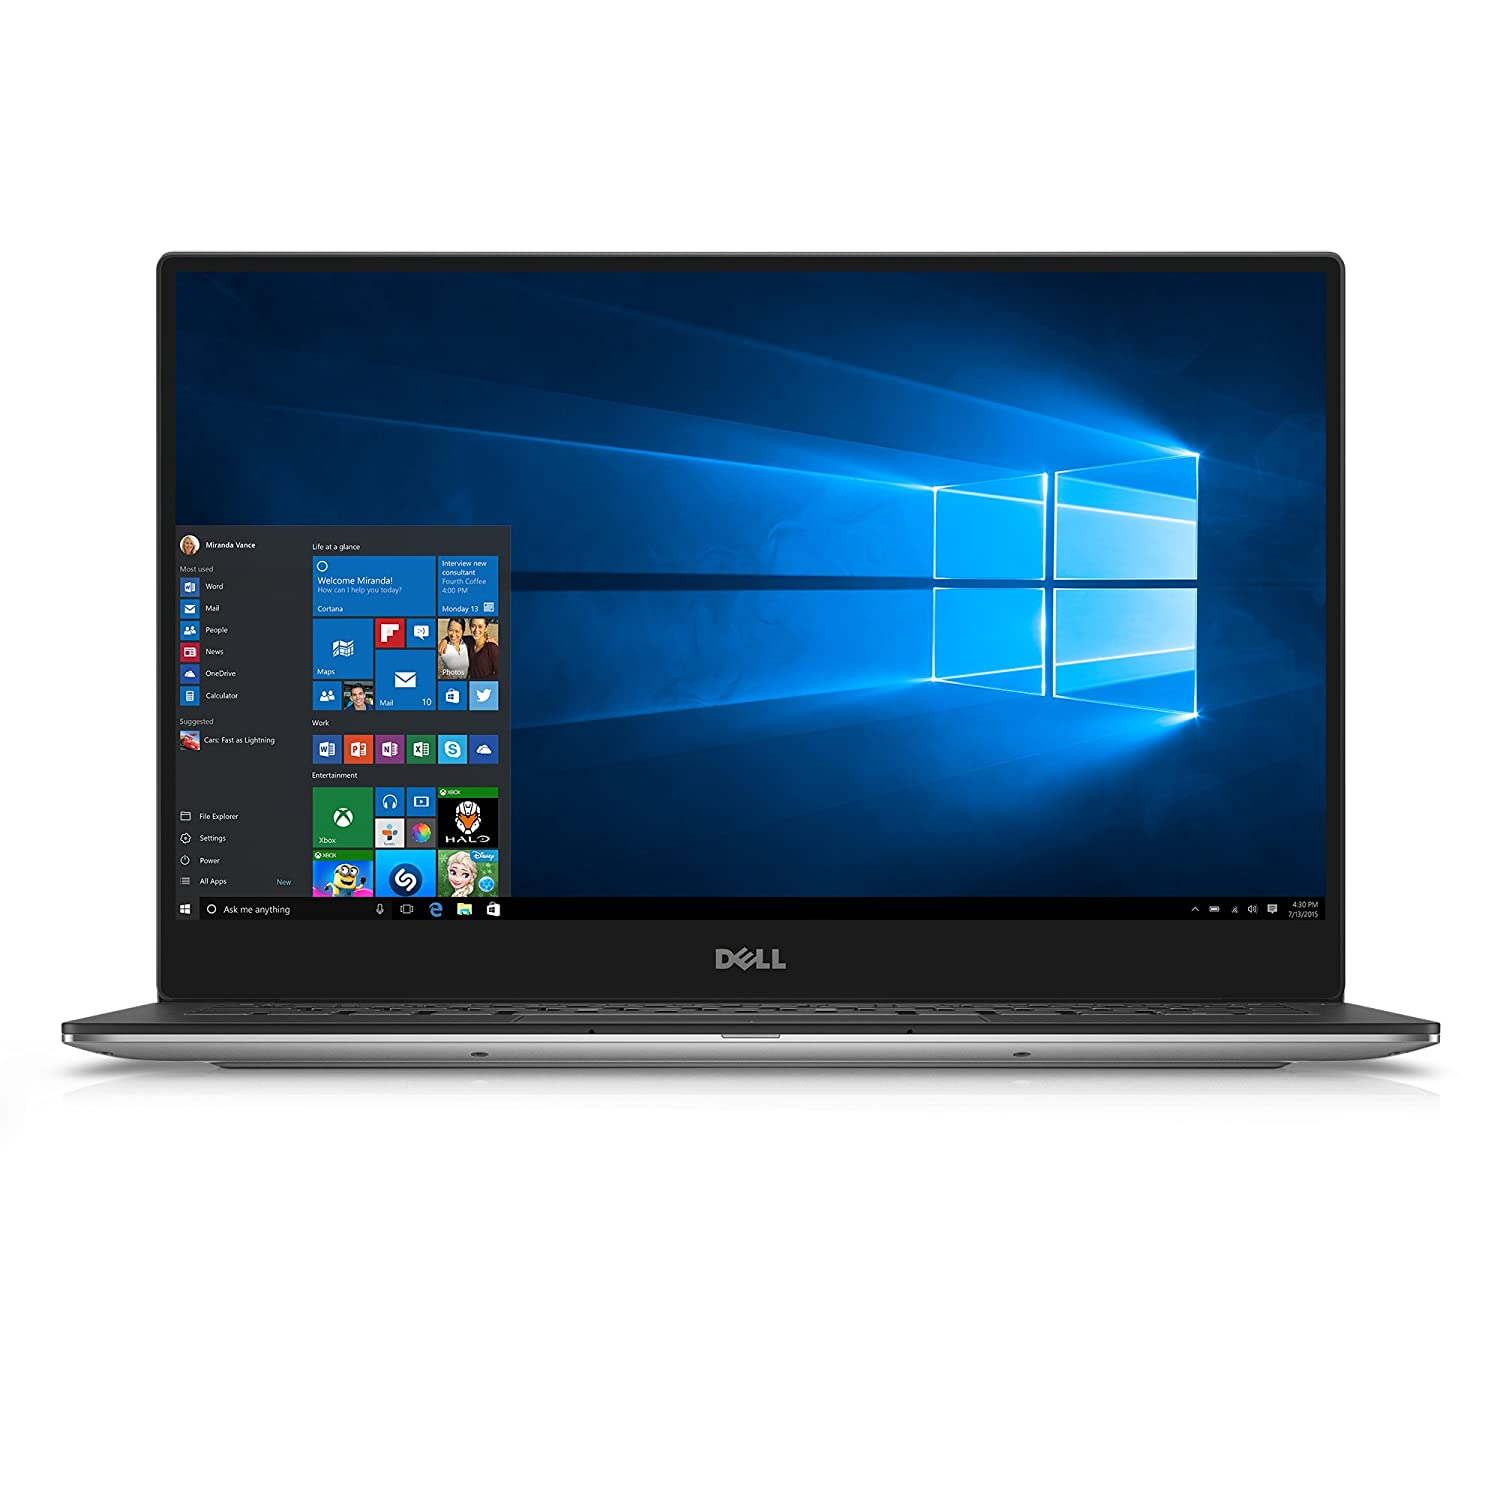 DELL XPS XPS9350-4007SLV 13.3-Inch Touchscreen